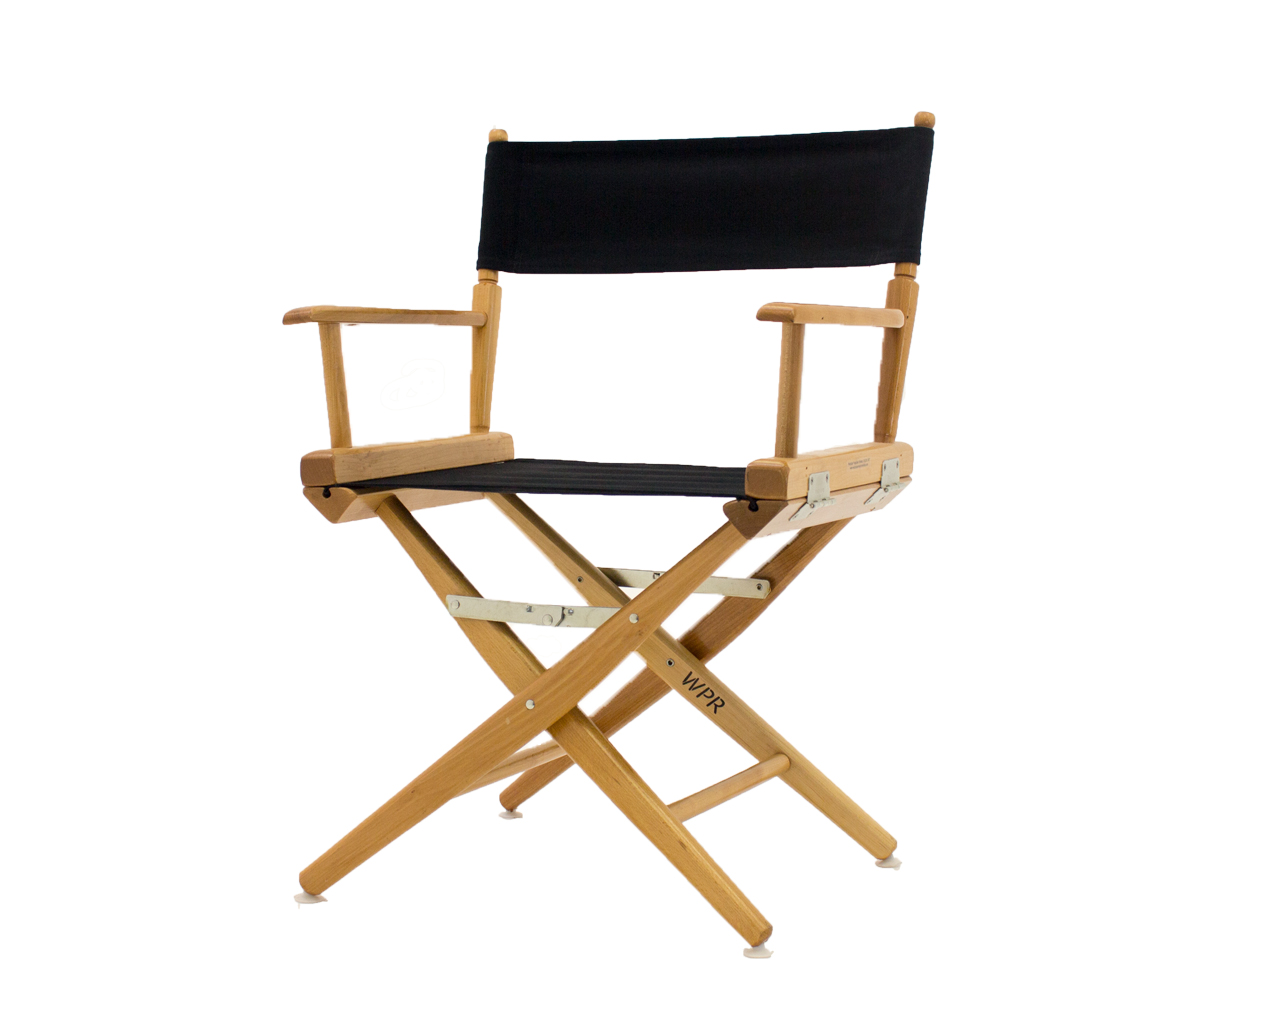 Short director chairs